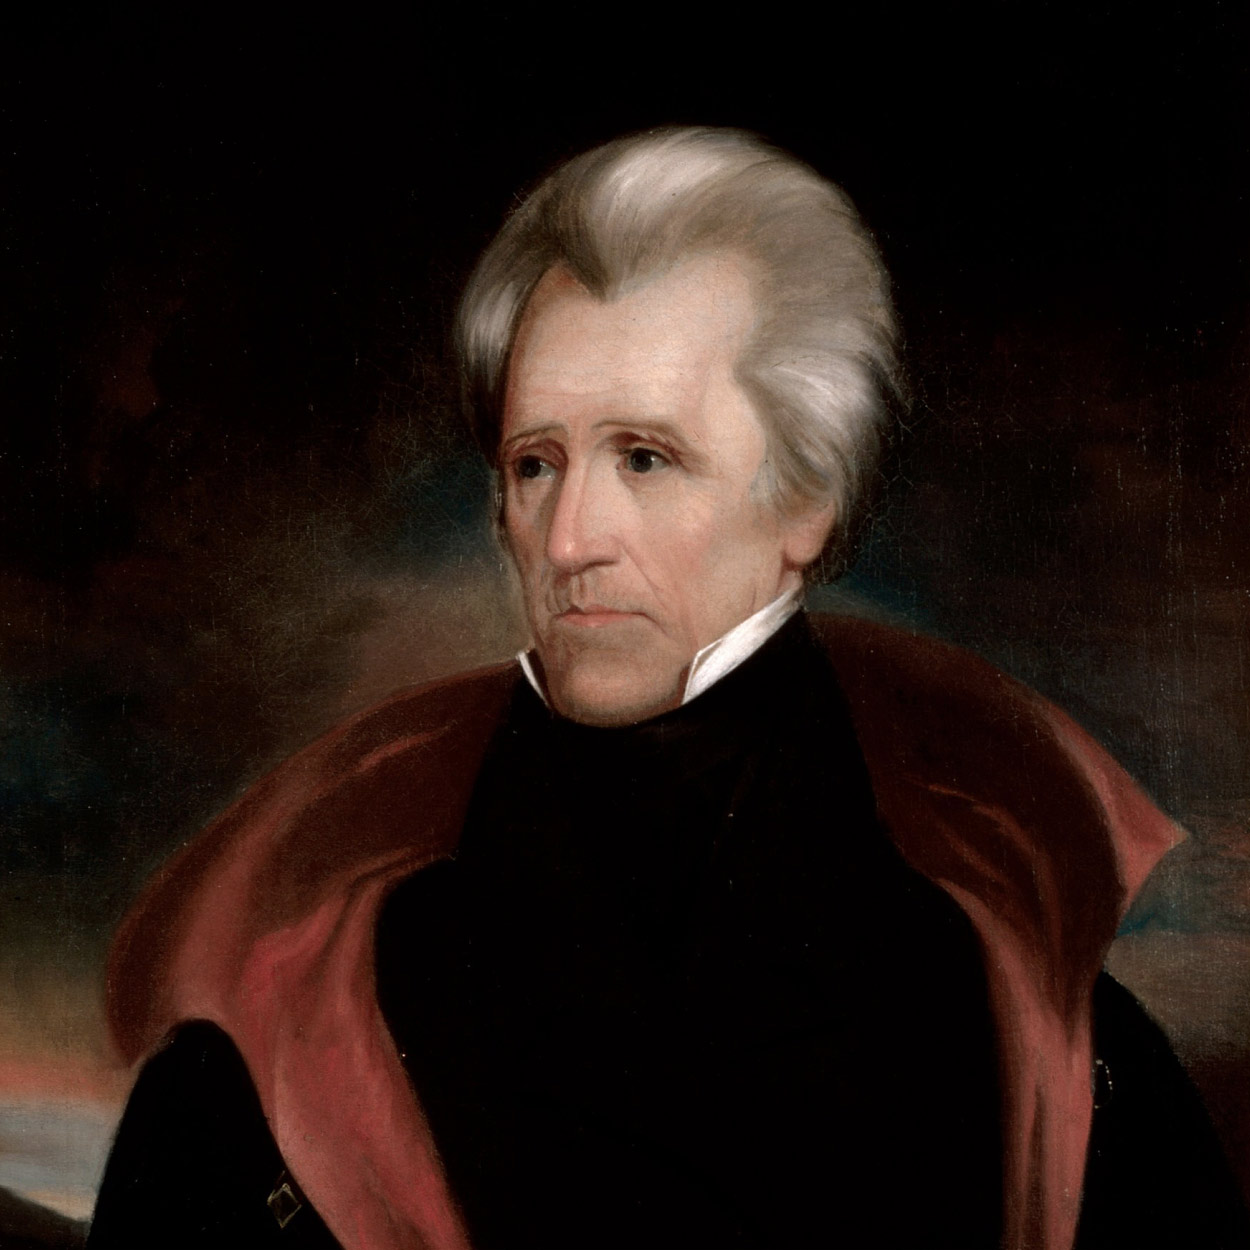 Portrait of Andrew Jackson, the 7th President of the United States